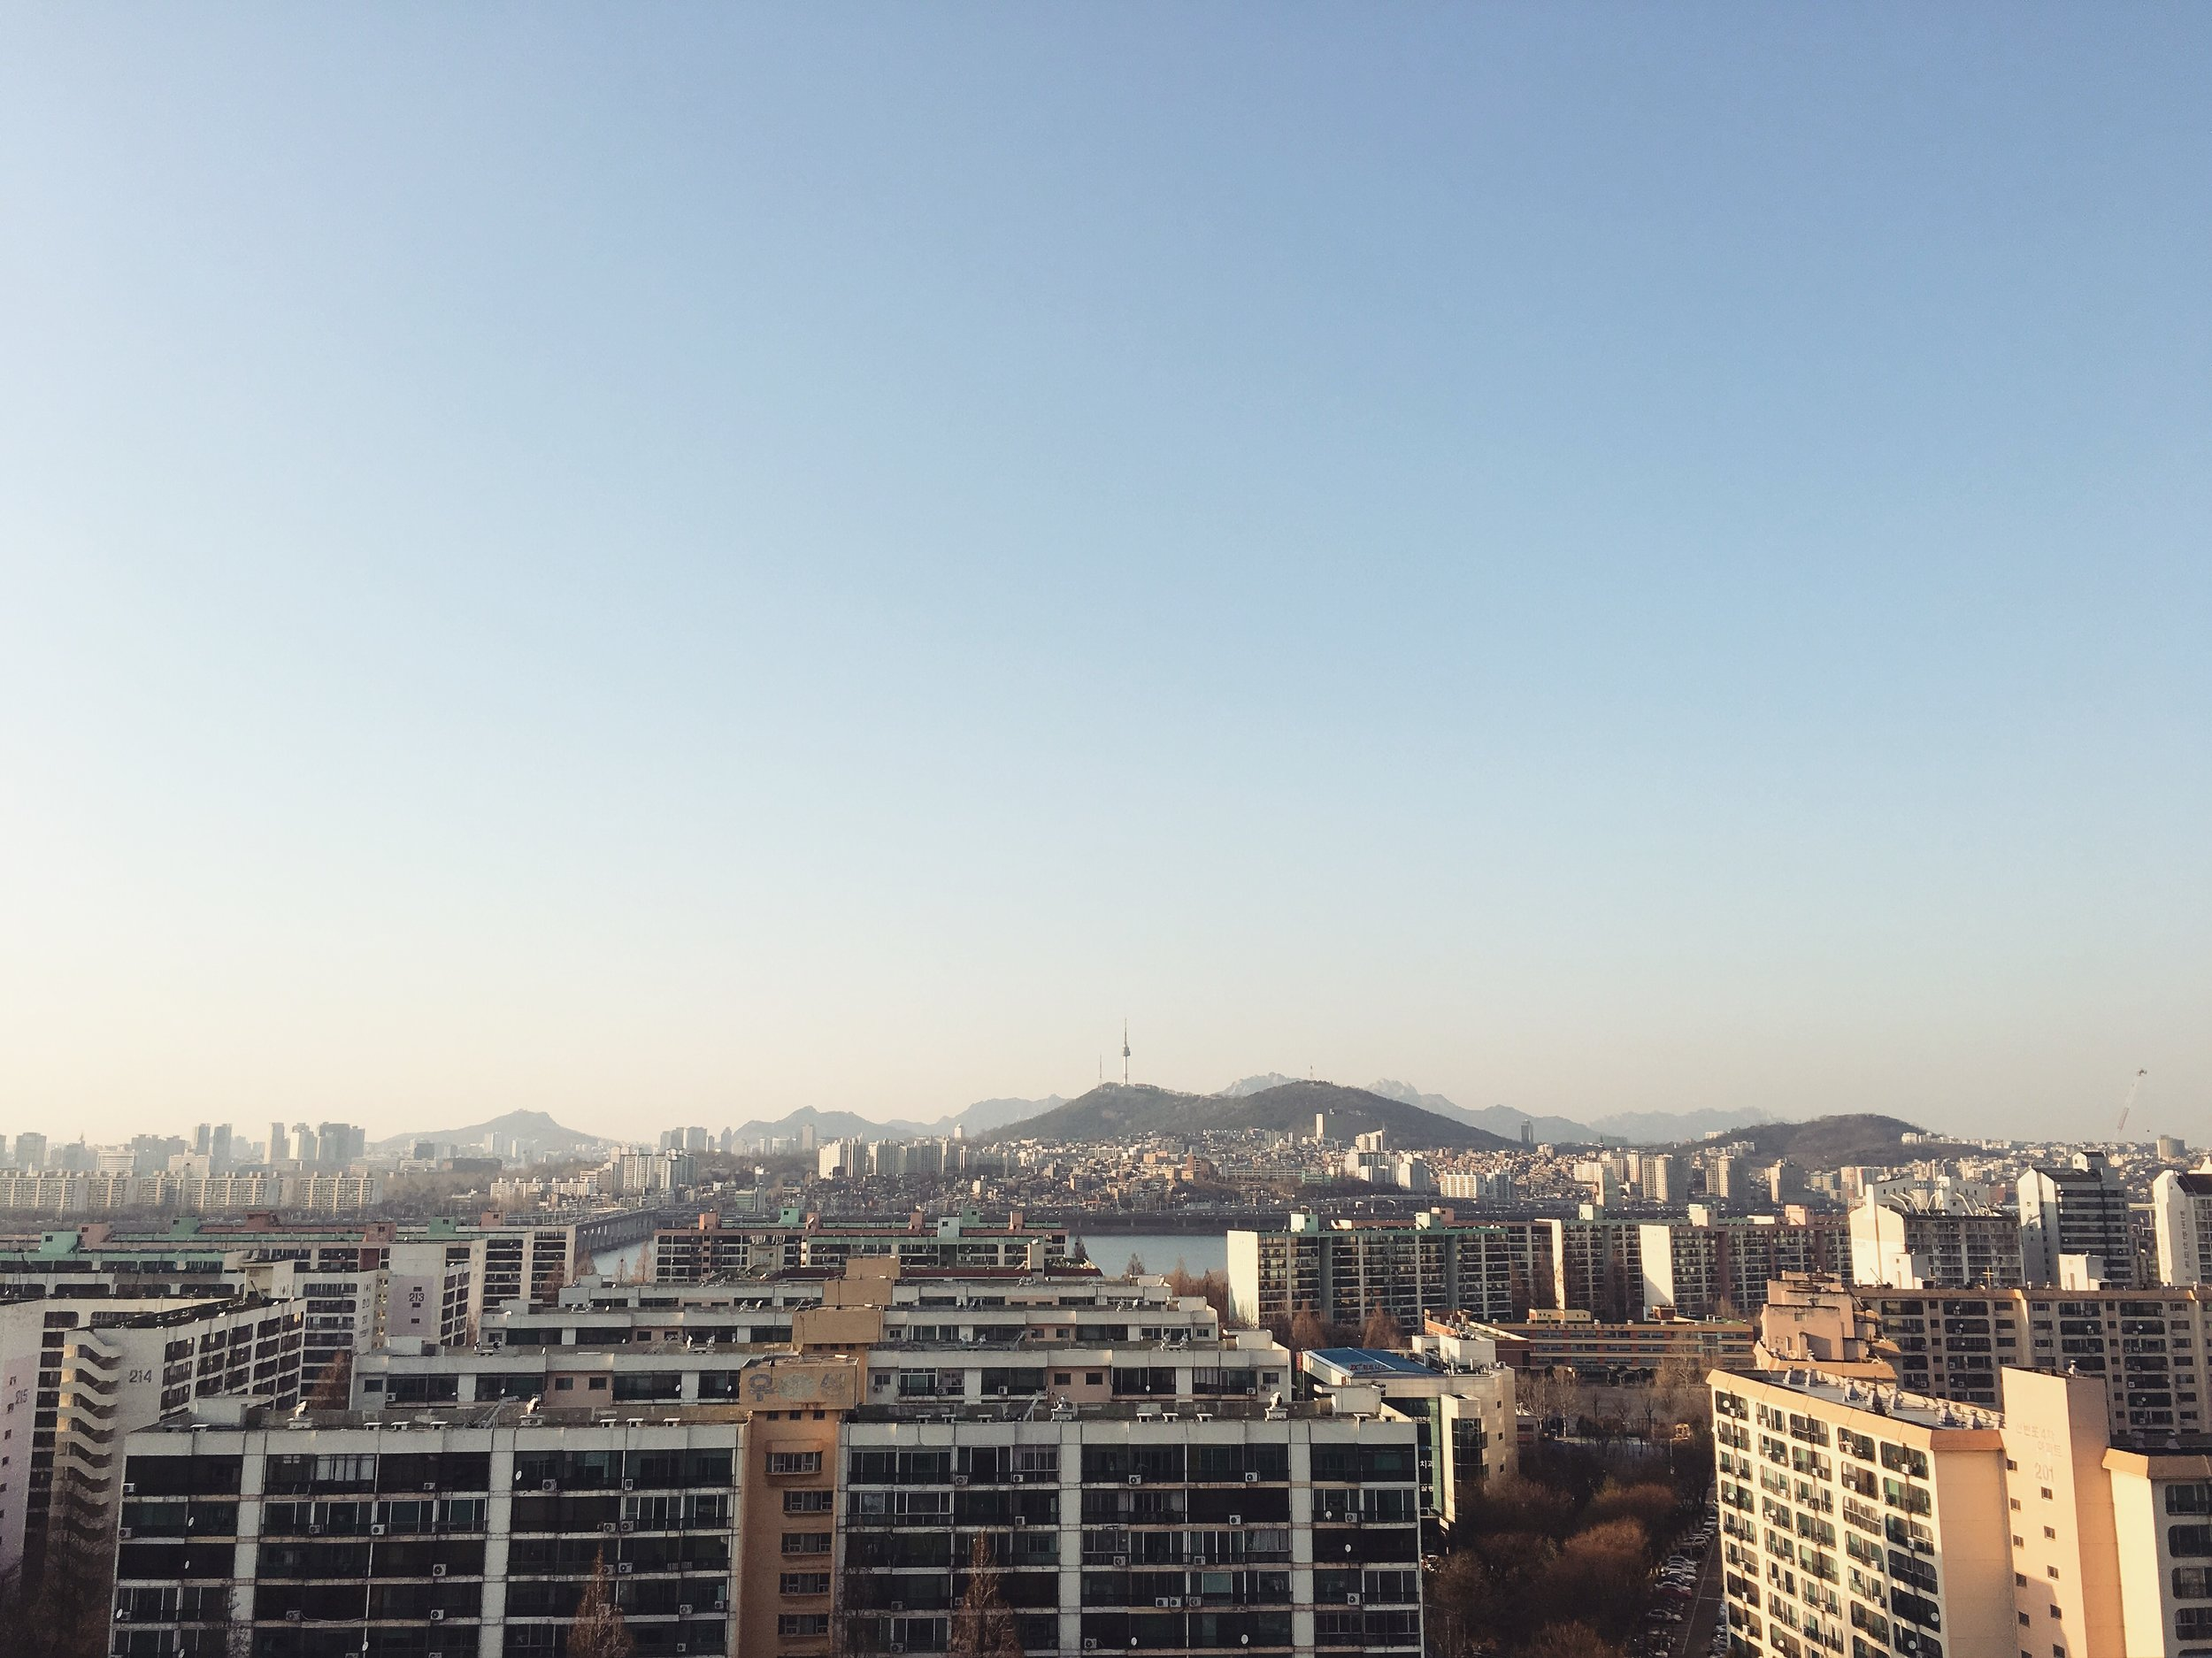 Enjoying Seoul's view after a long yet fulfilling day of interviews & traveling